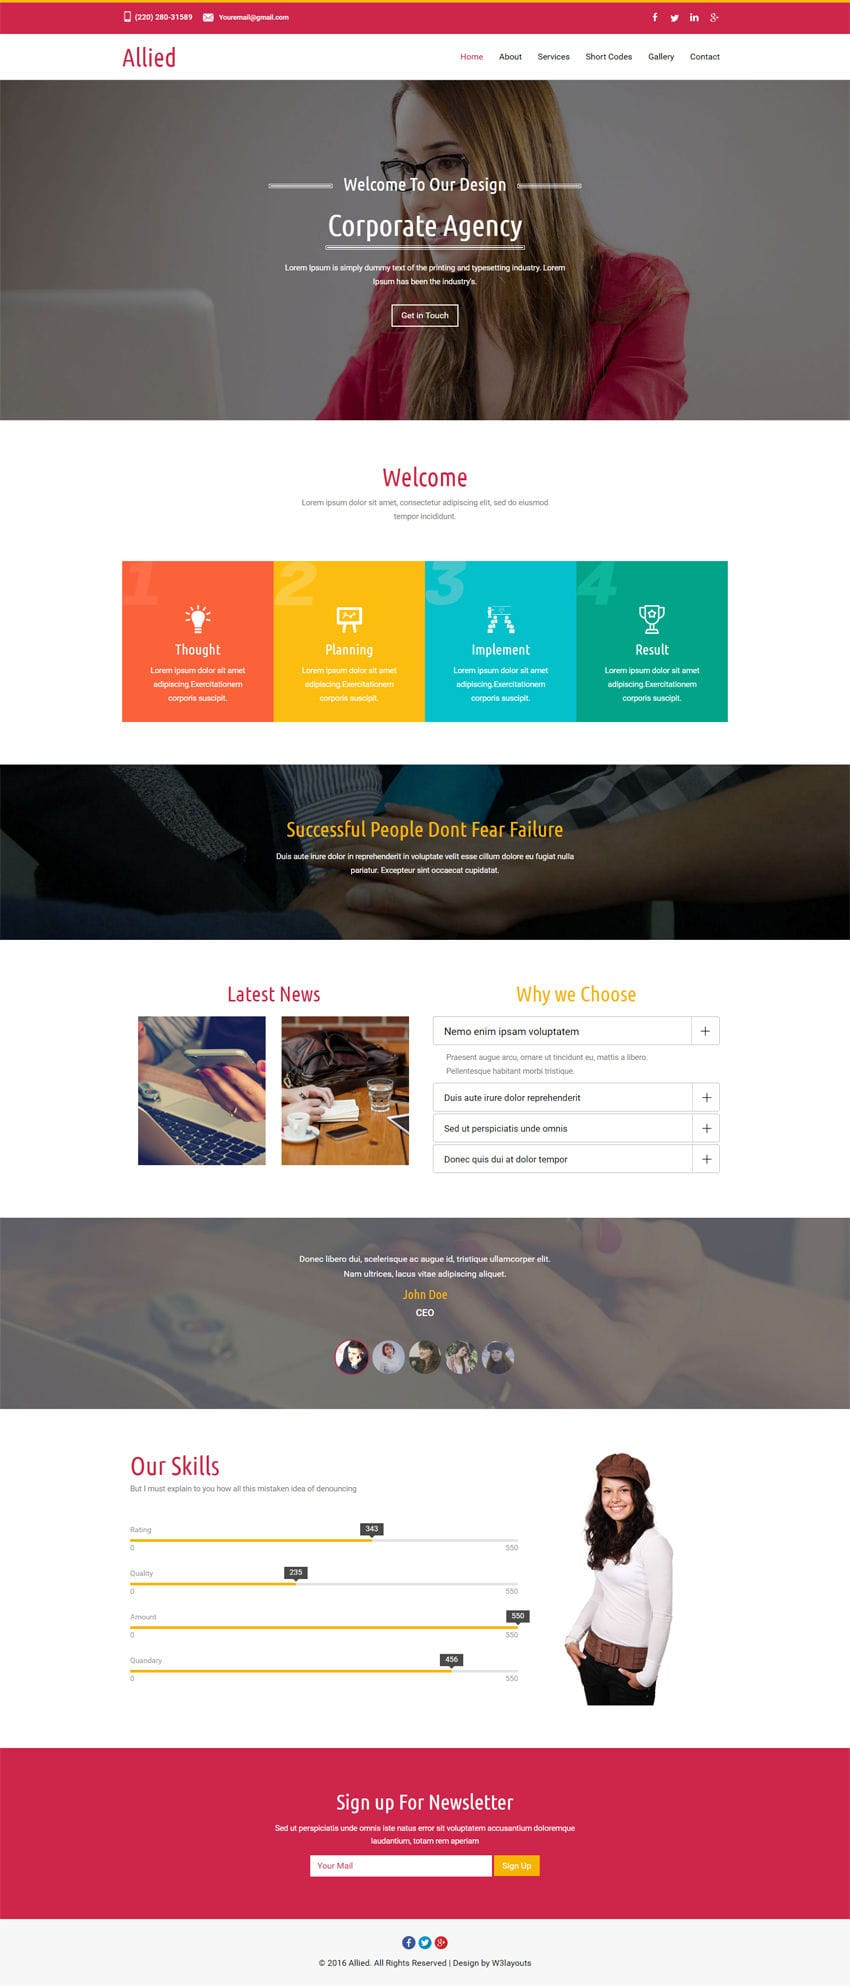 Allied a corporate Category Flat Bootstrap Responsive Web